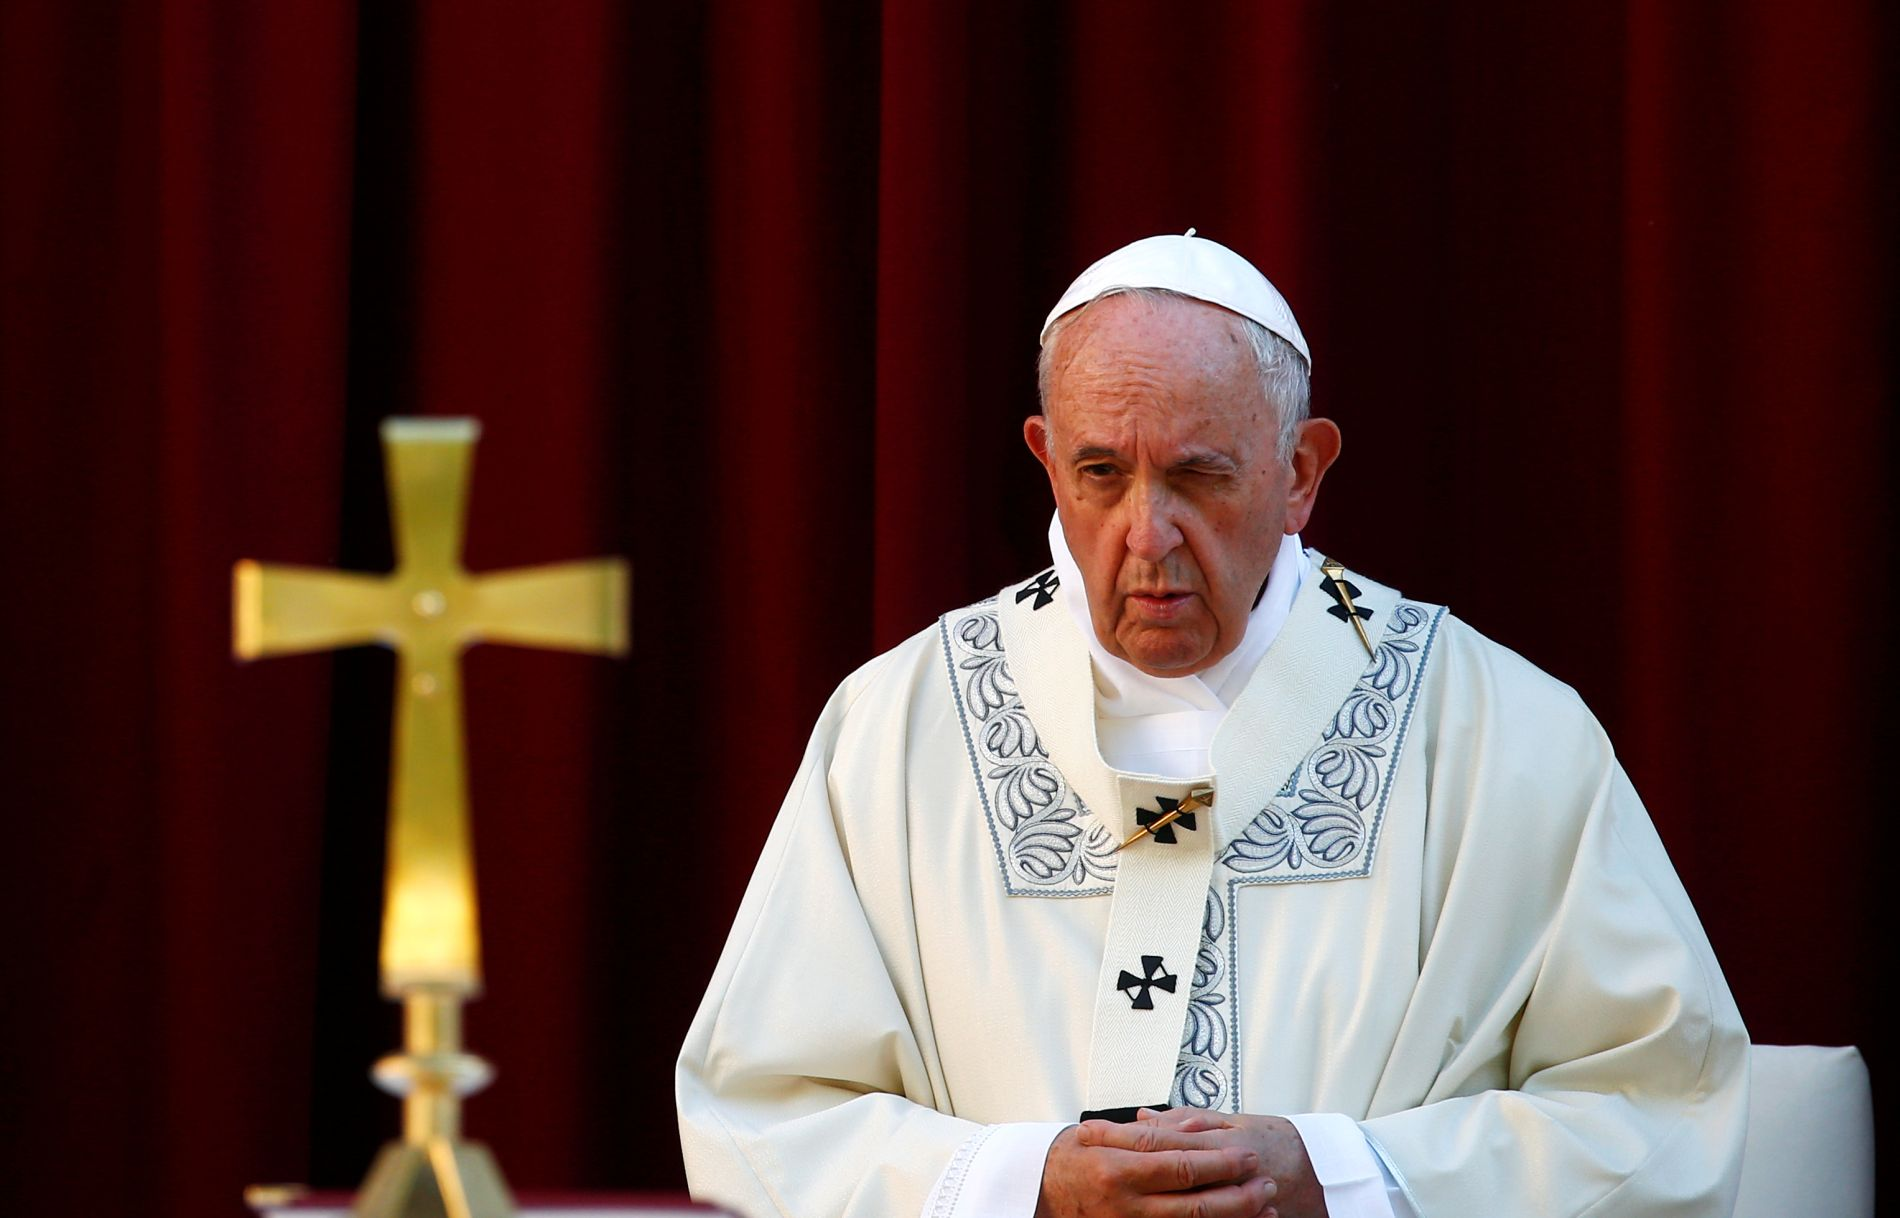 Pope Francis holds traditional Corpus Christi feast Mass in Rome